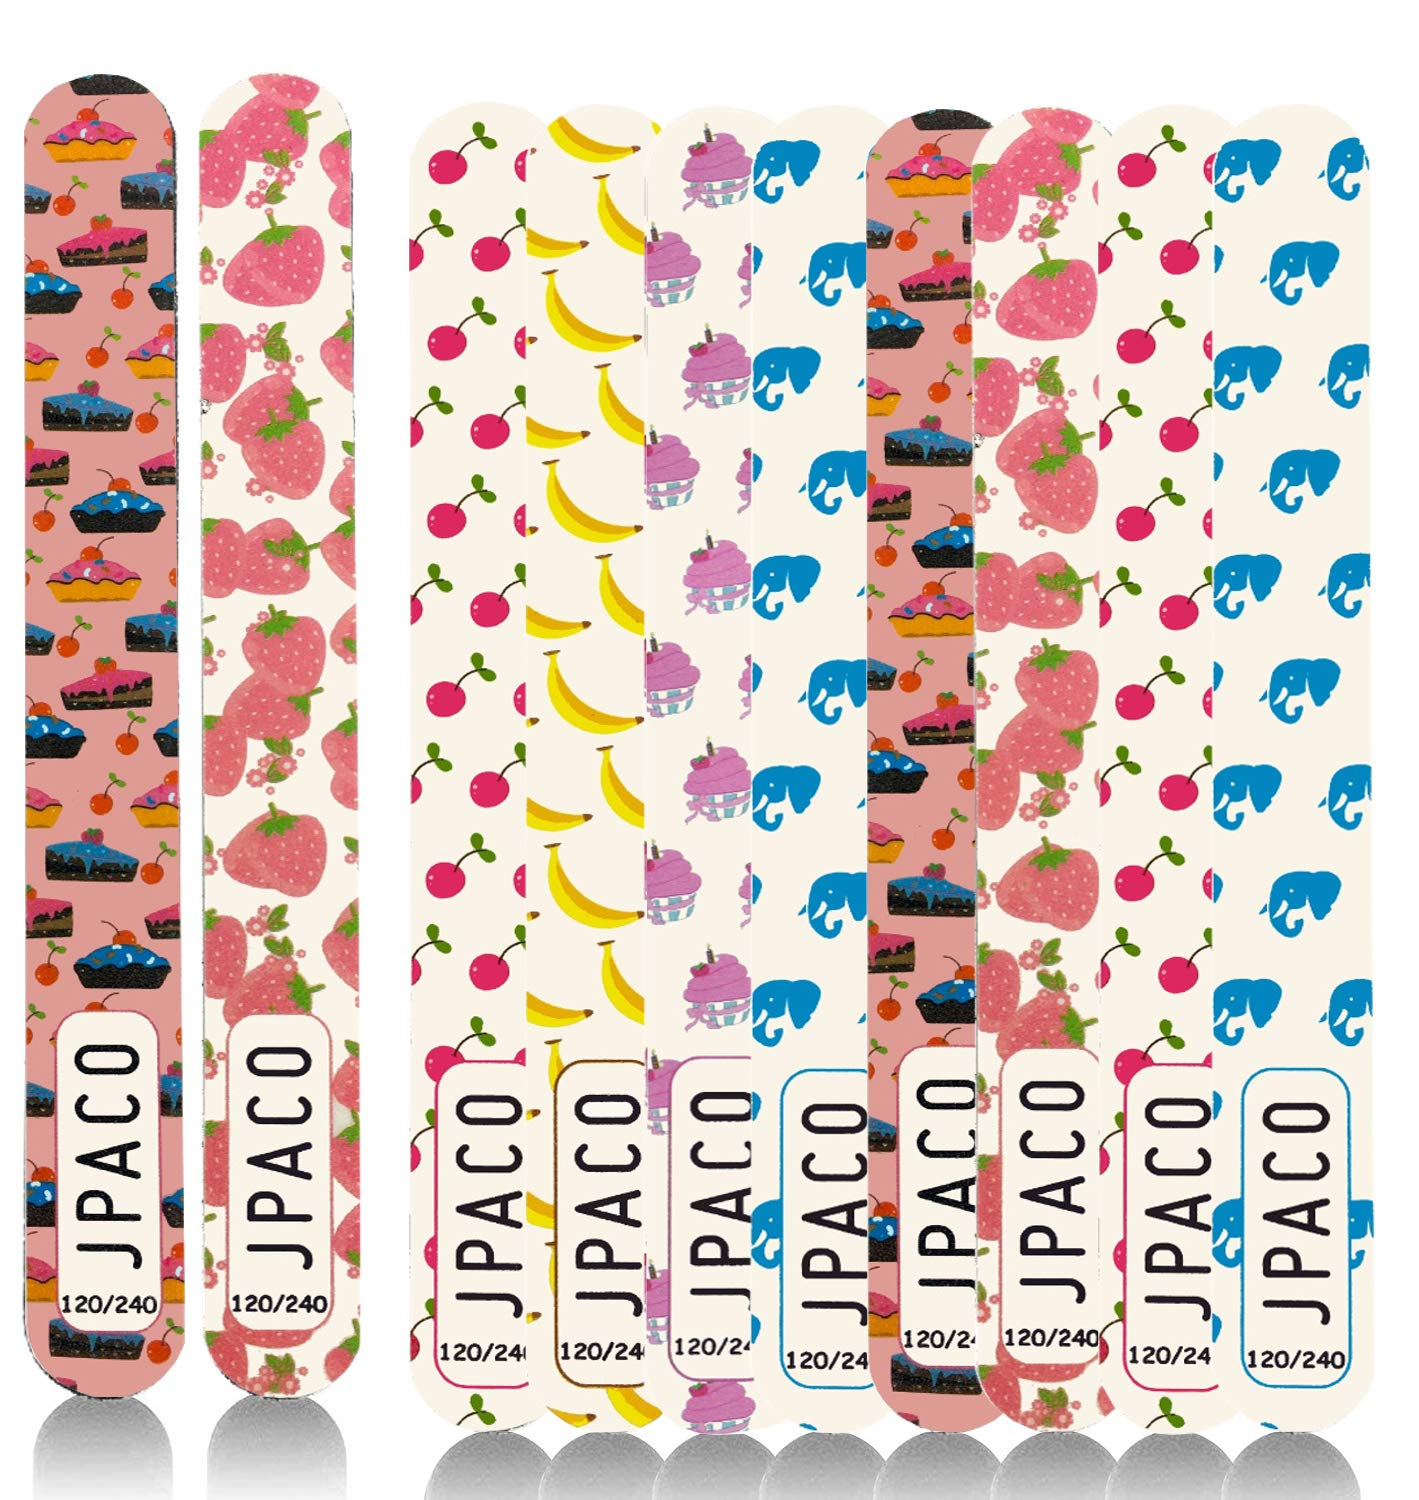 JPACO 12 PACK Professional Nail Files 120 240 Grit (6 Cute Designs) for Press Ons, Gel, Acrylic, Crystal, Natural Nails. Double Sided Emory Board & Washable (12 PCS)